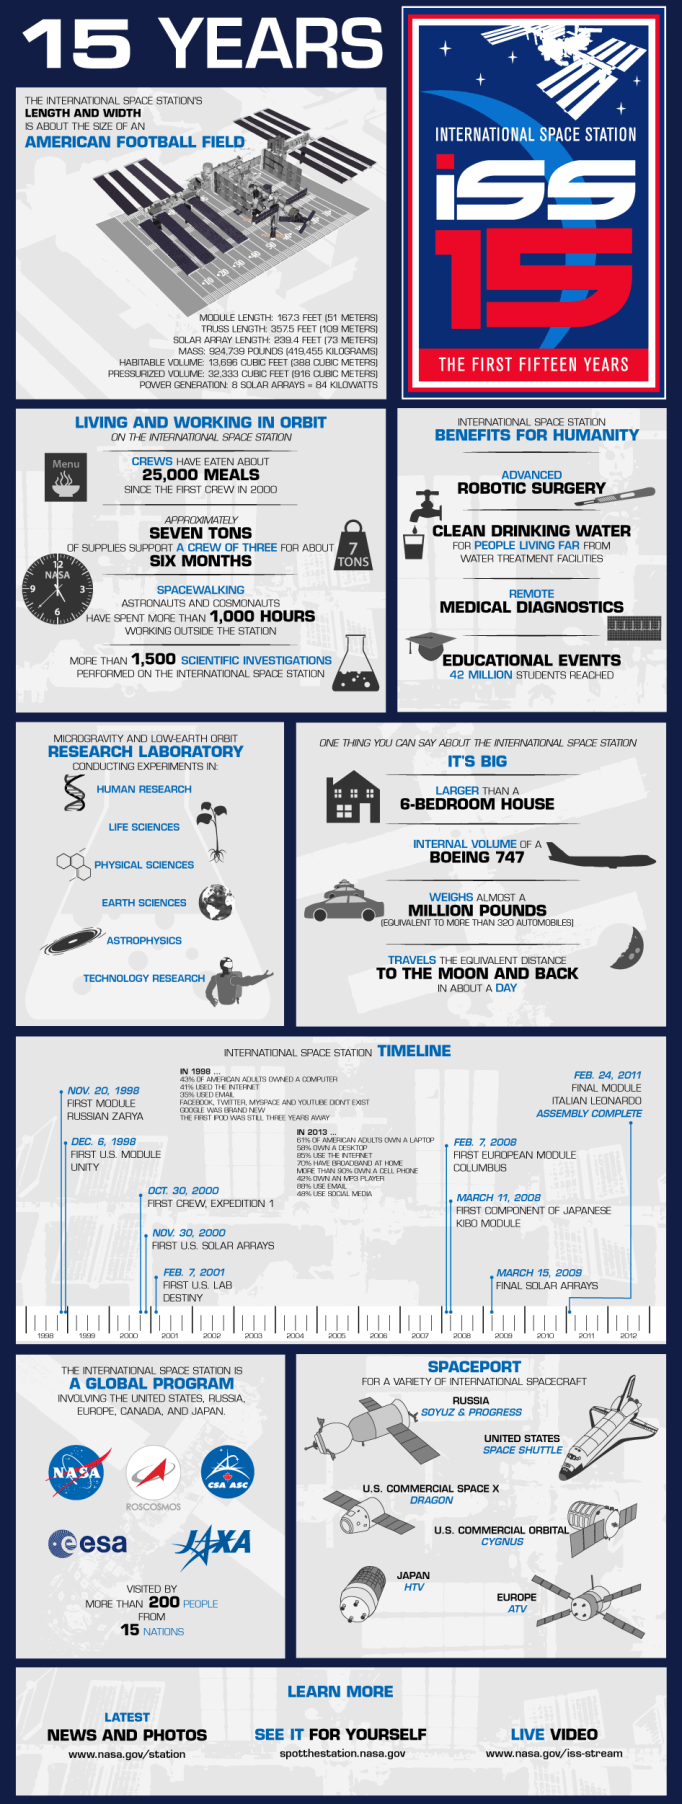 iss-infographic-22a (1)